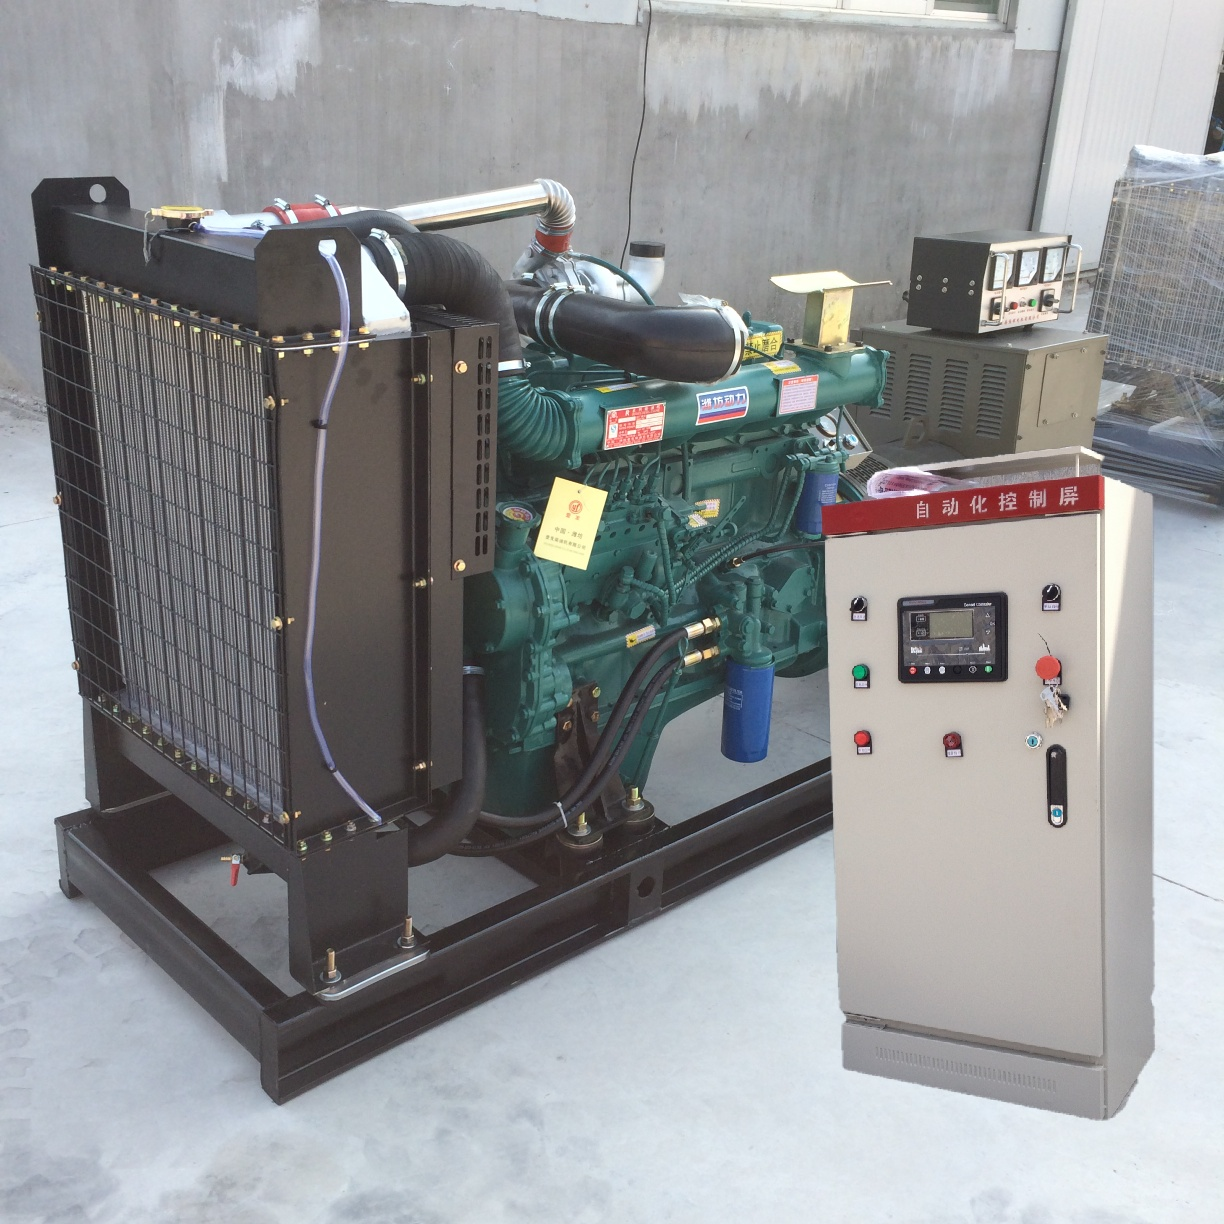 The 100 kw fully automatic diesel generating set is easy to use, safe and reliable, and other models are ready to be purchased